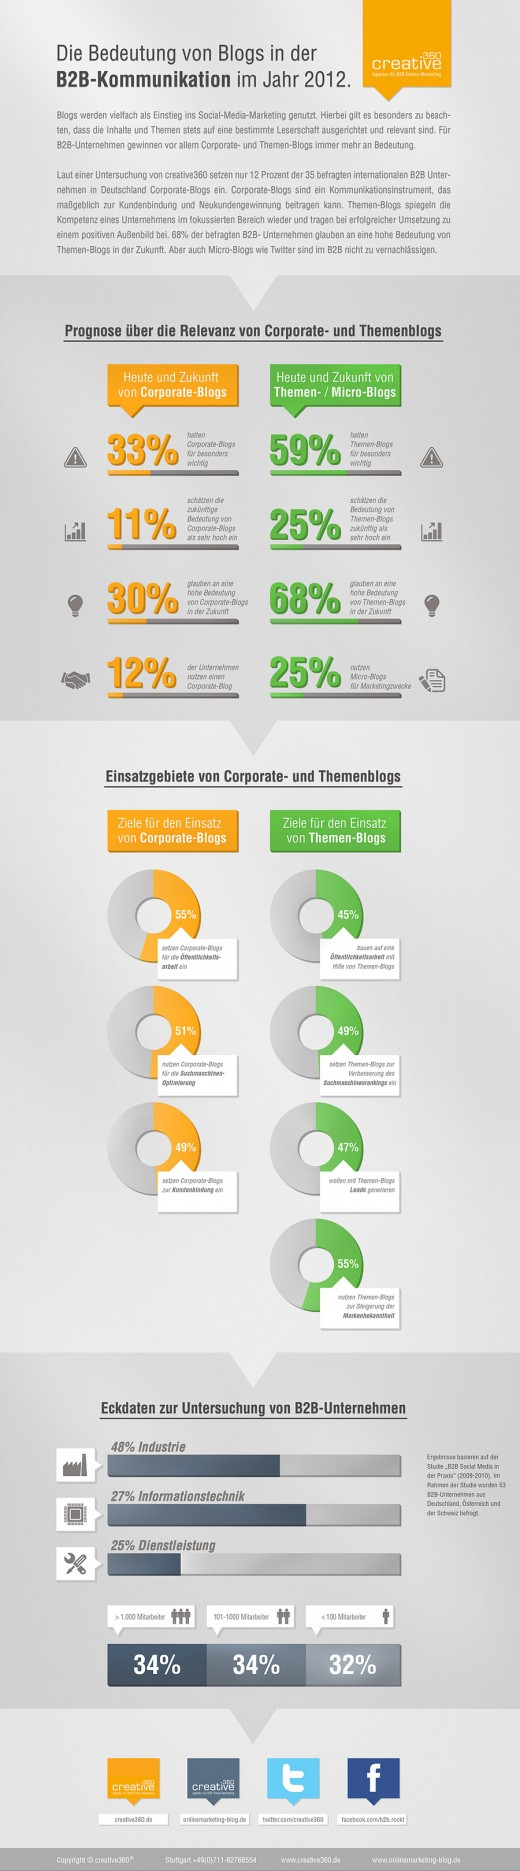 Corporate Blogging [Infografik]